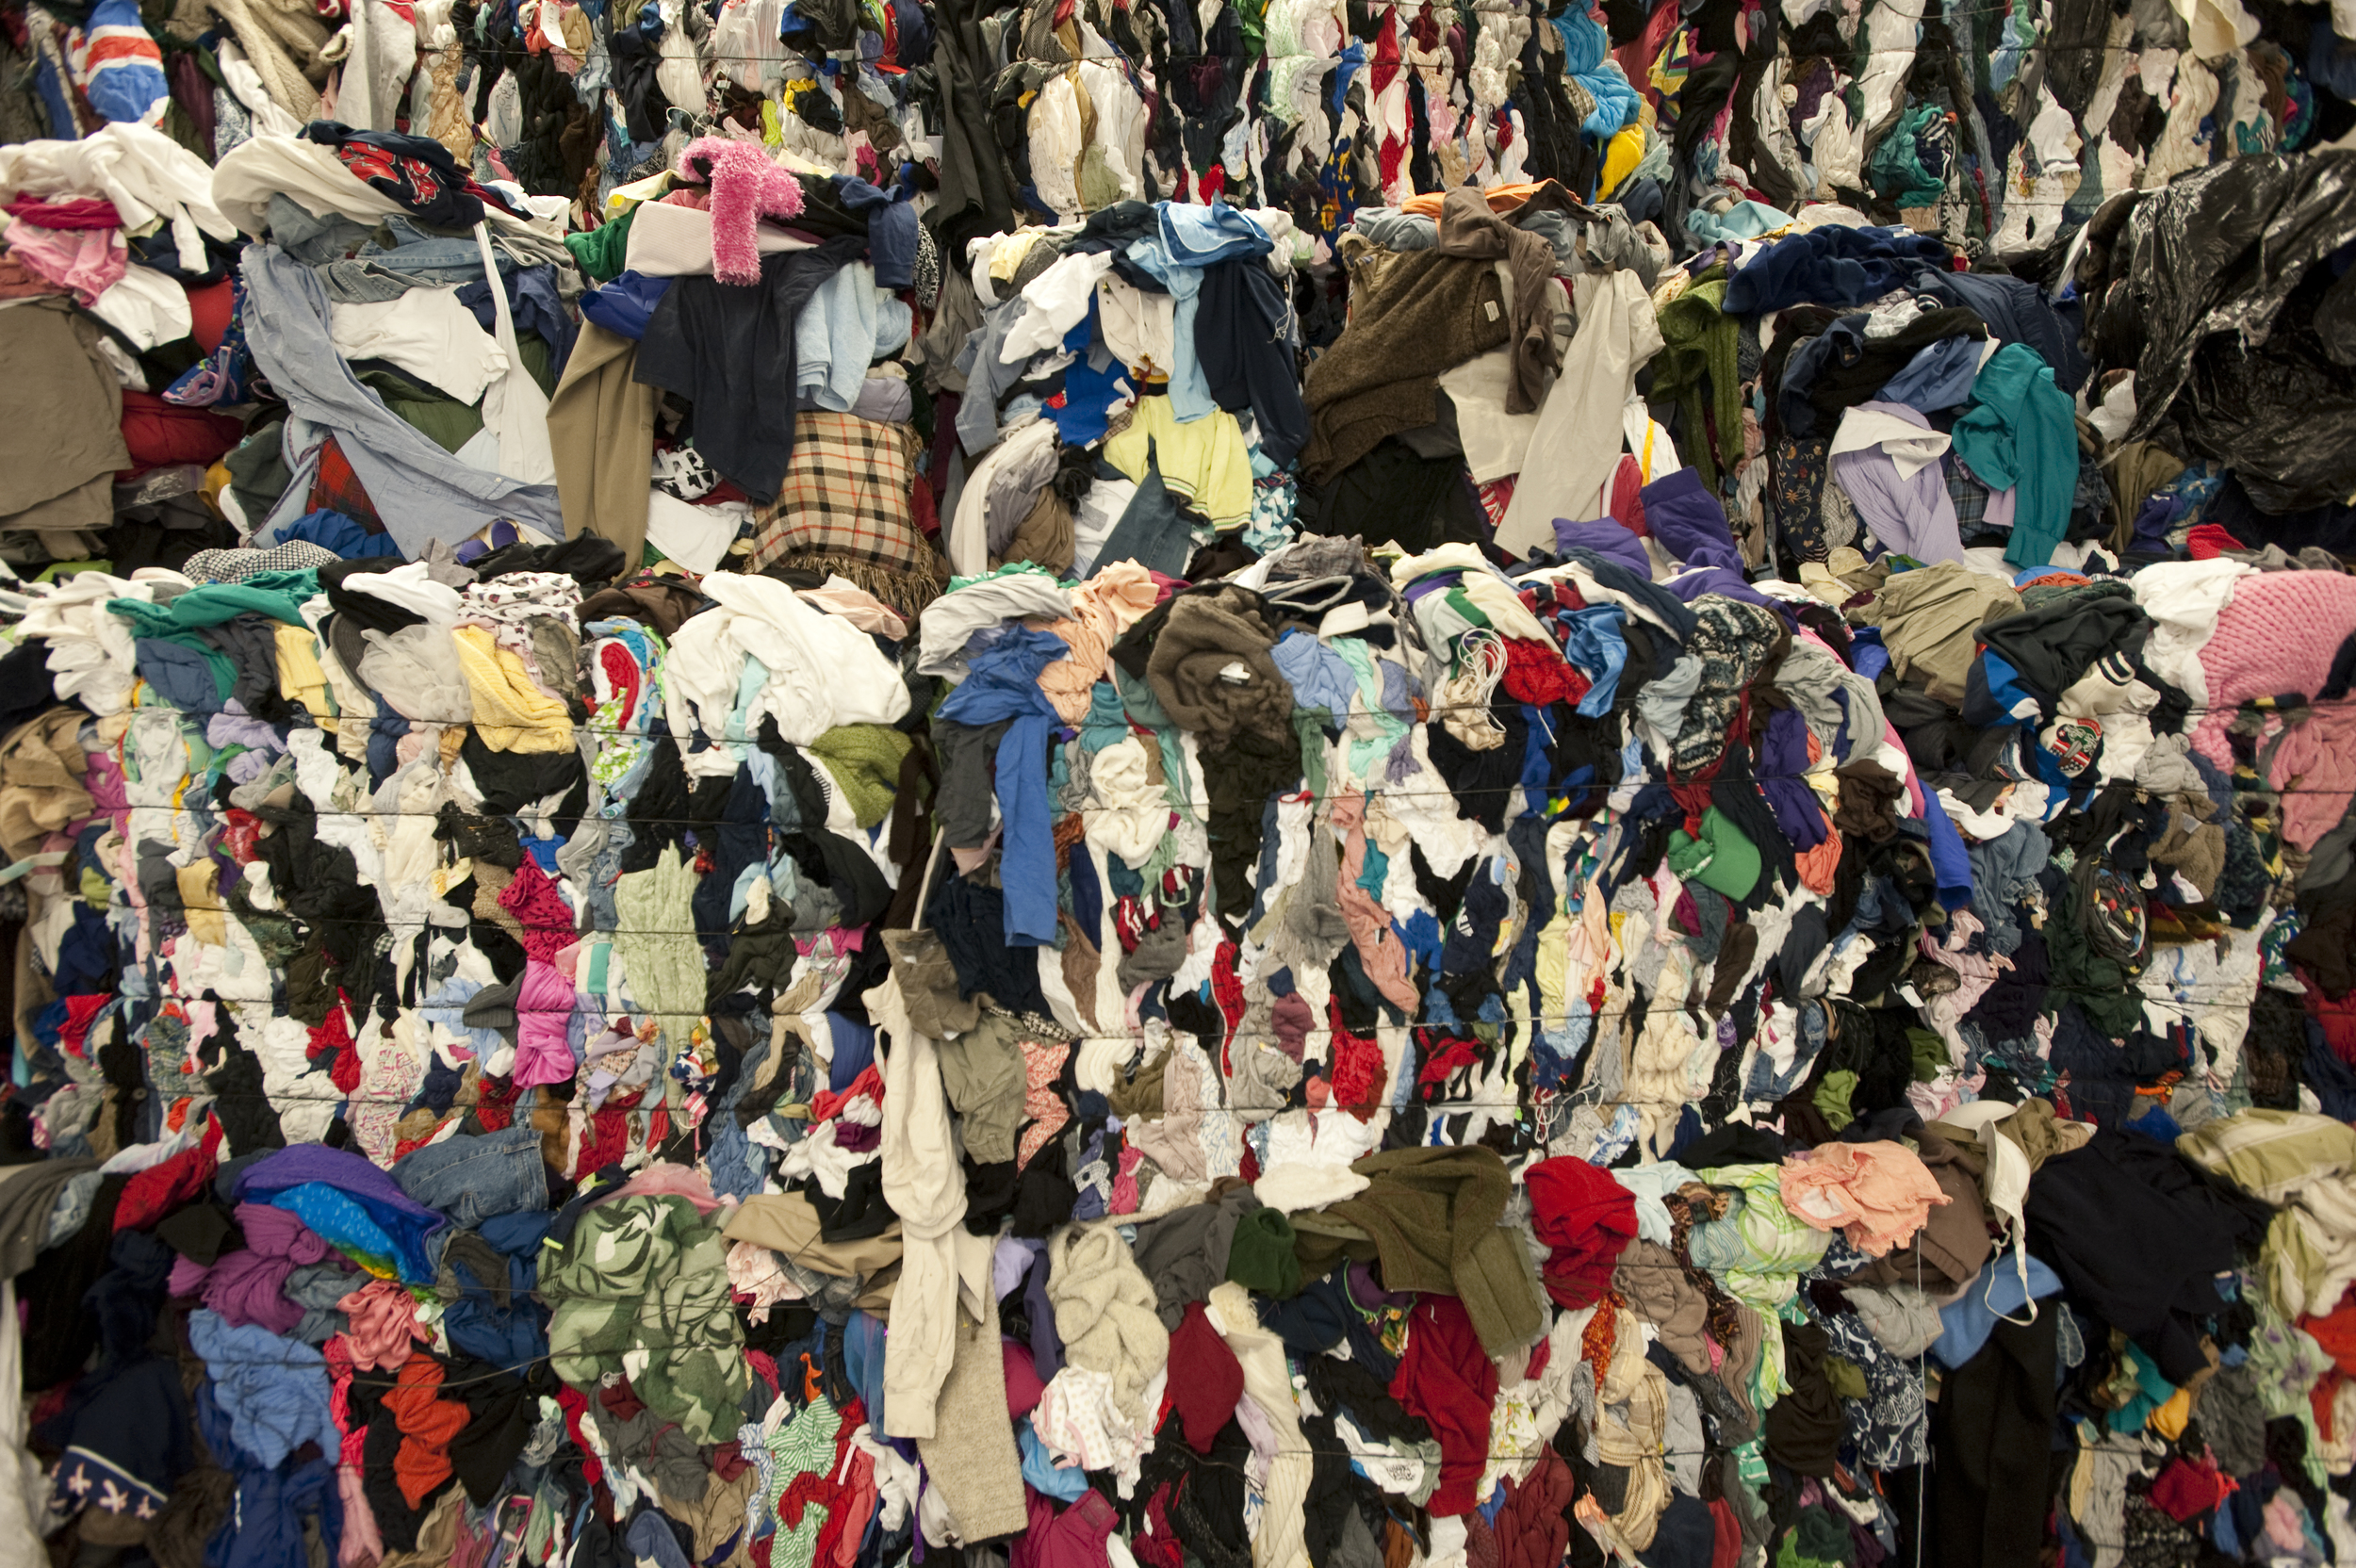 Bundles of clothing waste await recycling. Many discarded clothes end up outside the recycling system, clogging the world's landfills with an estimated 70 lbs per capita of garment waste in the US alone (photo: GreenGlamour )